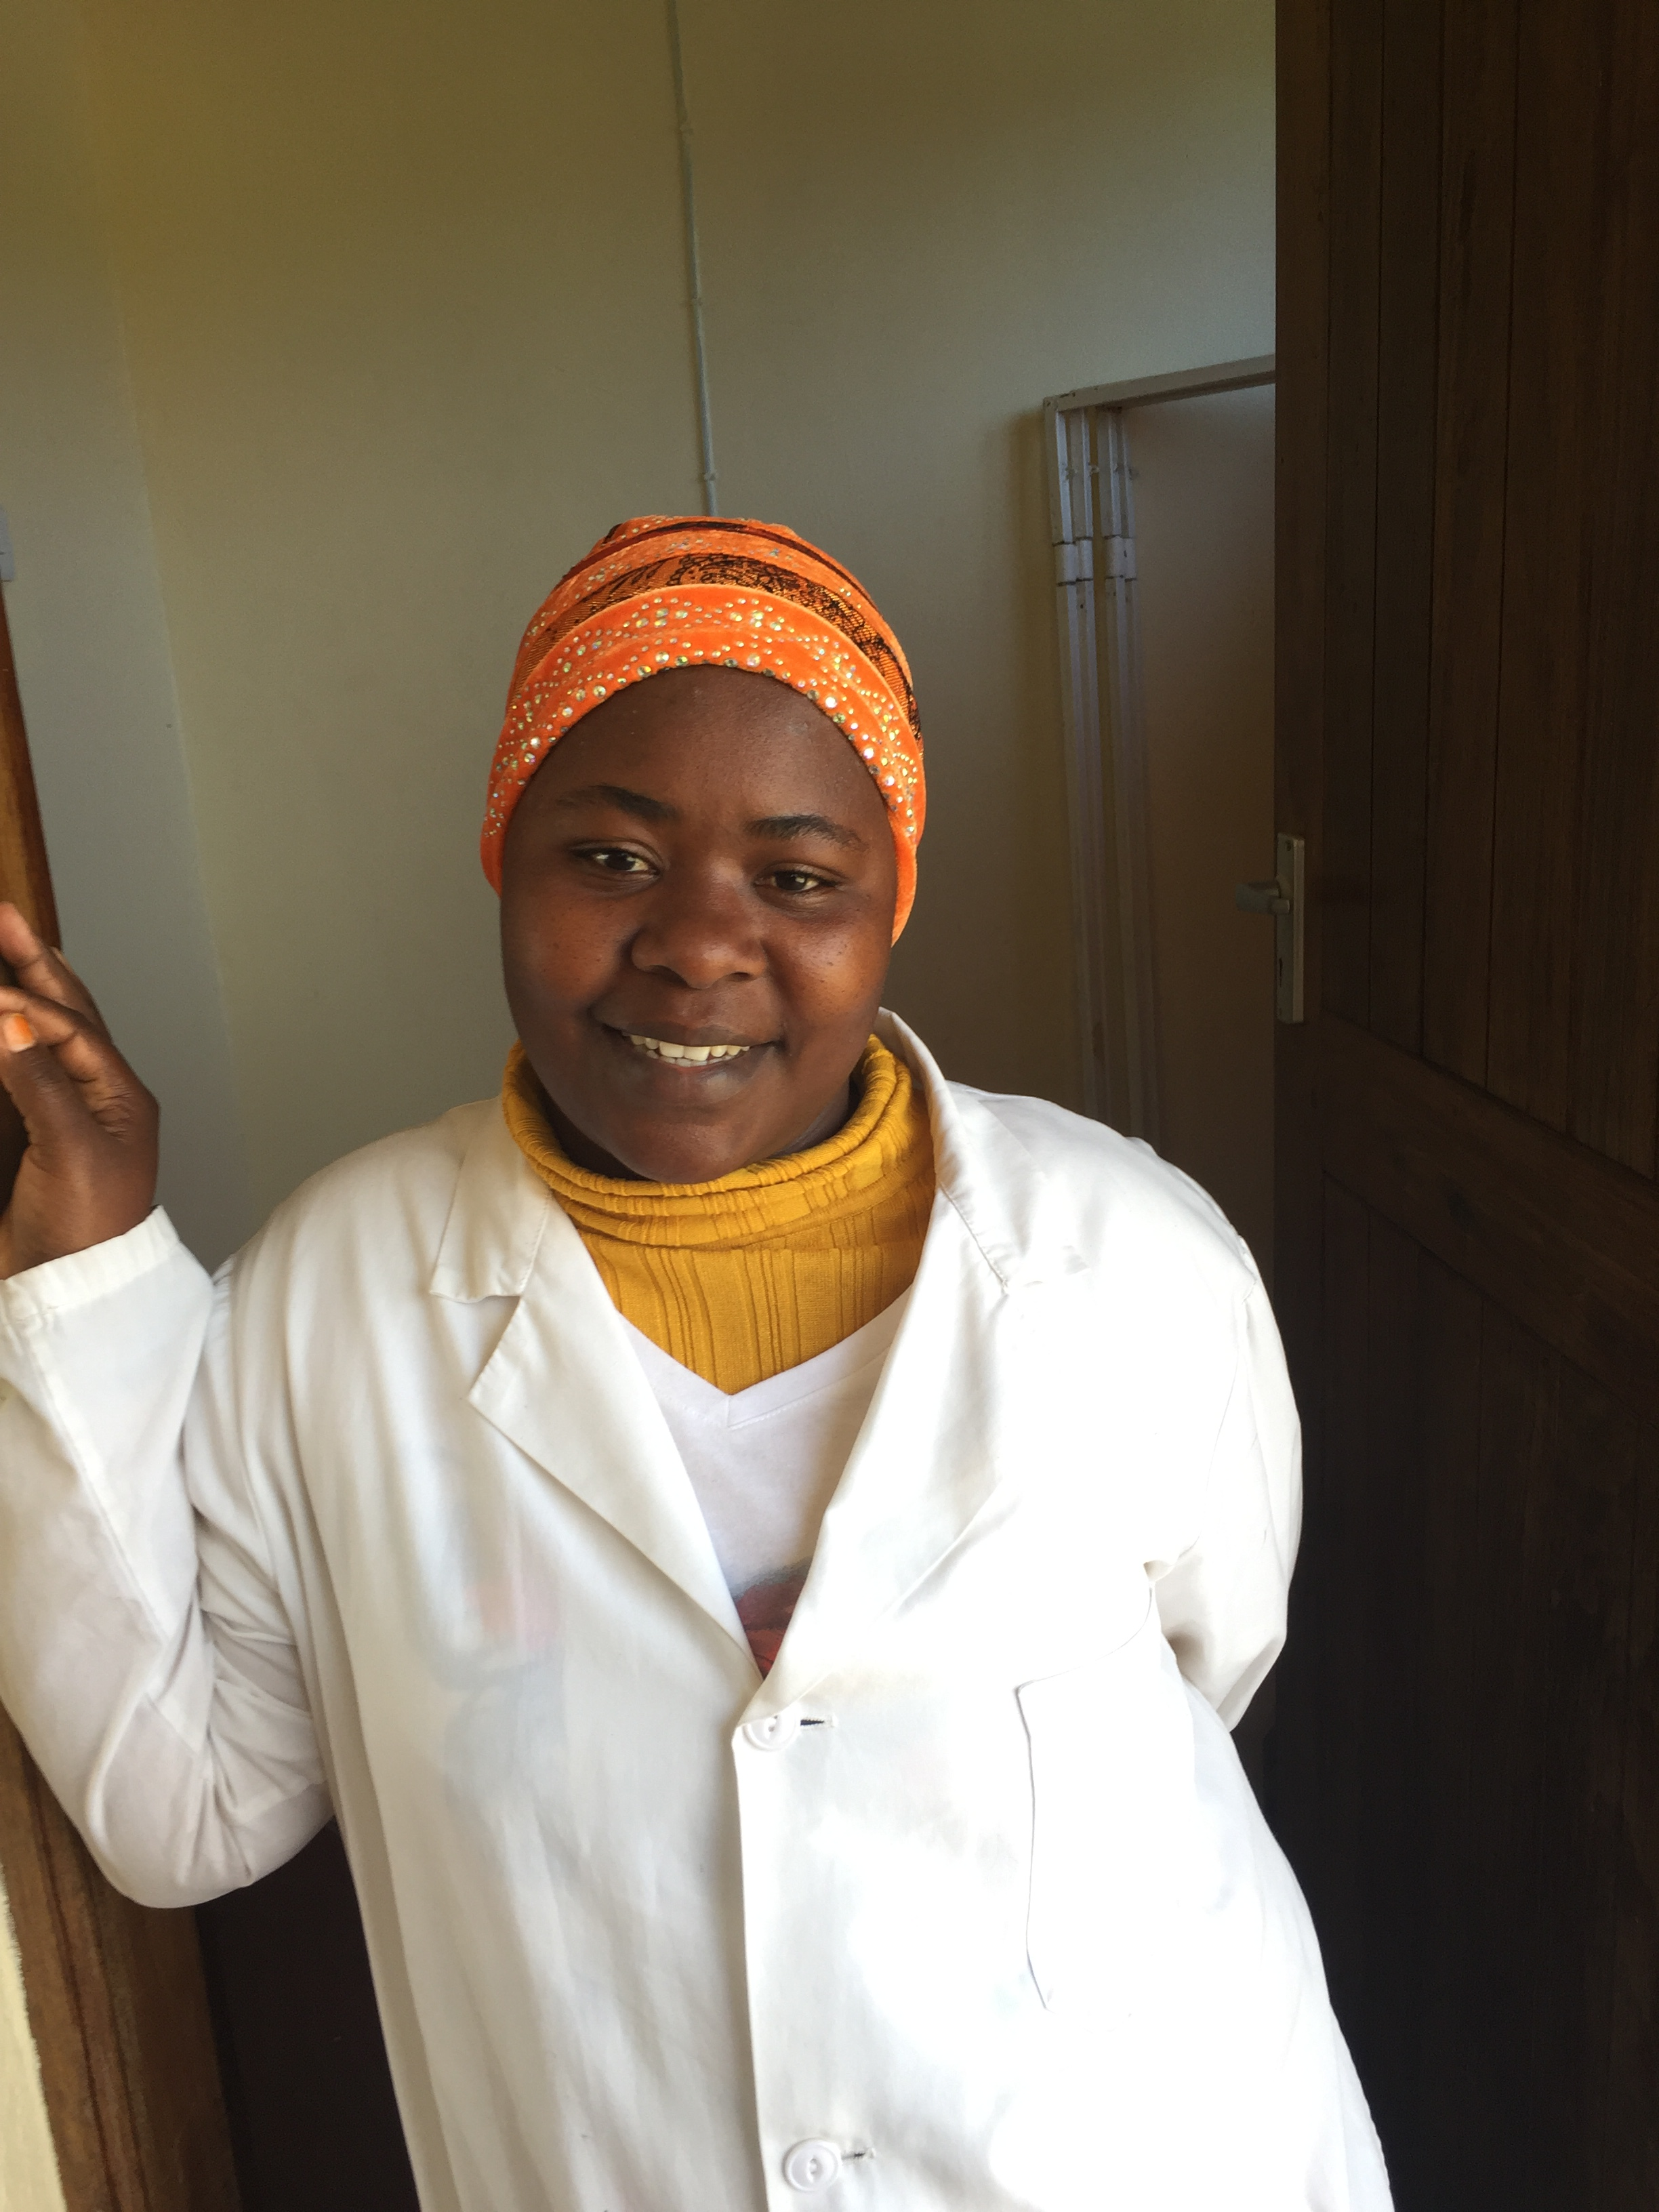 Thanks to education efforts by Zai and other clinic staff, the local midwives, who hold considerable influence with the area's women, are now directing them to the clinic for pre-natal services and childbirth.